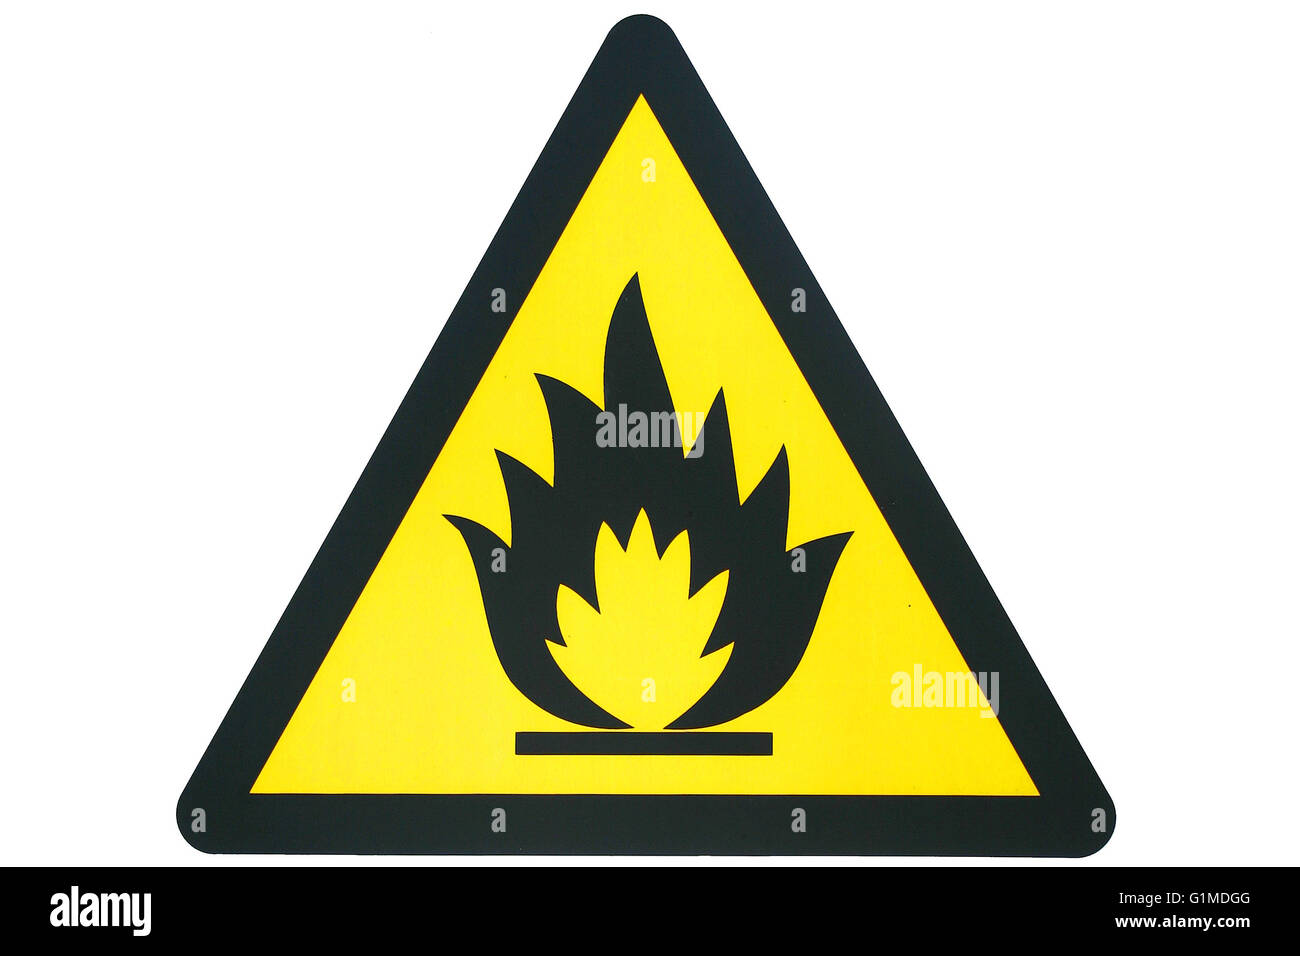 A triangular flammable gas or fire sign in yellow and black isolated on white. - Stock Image